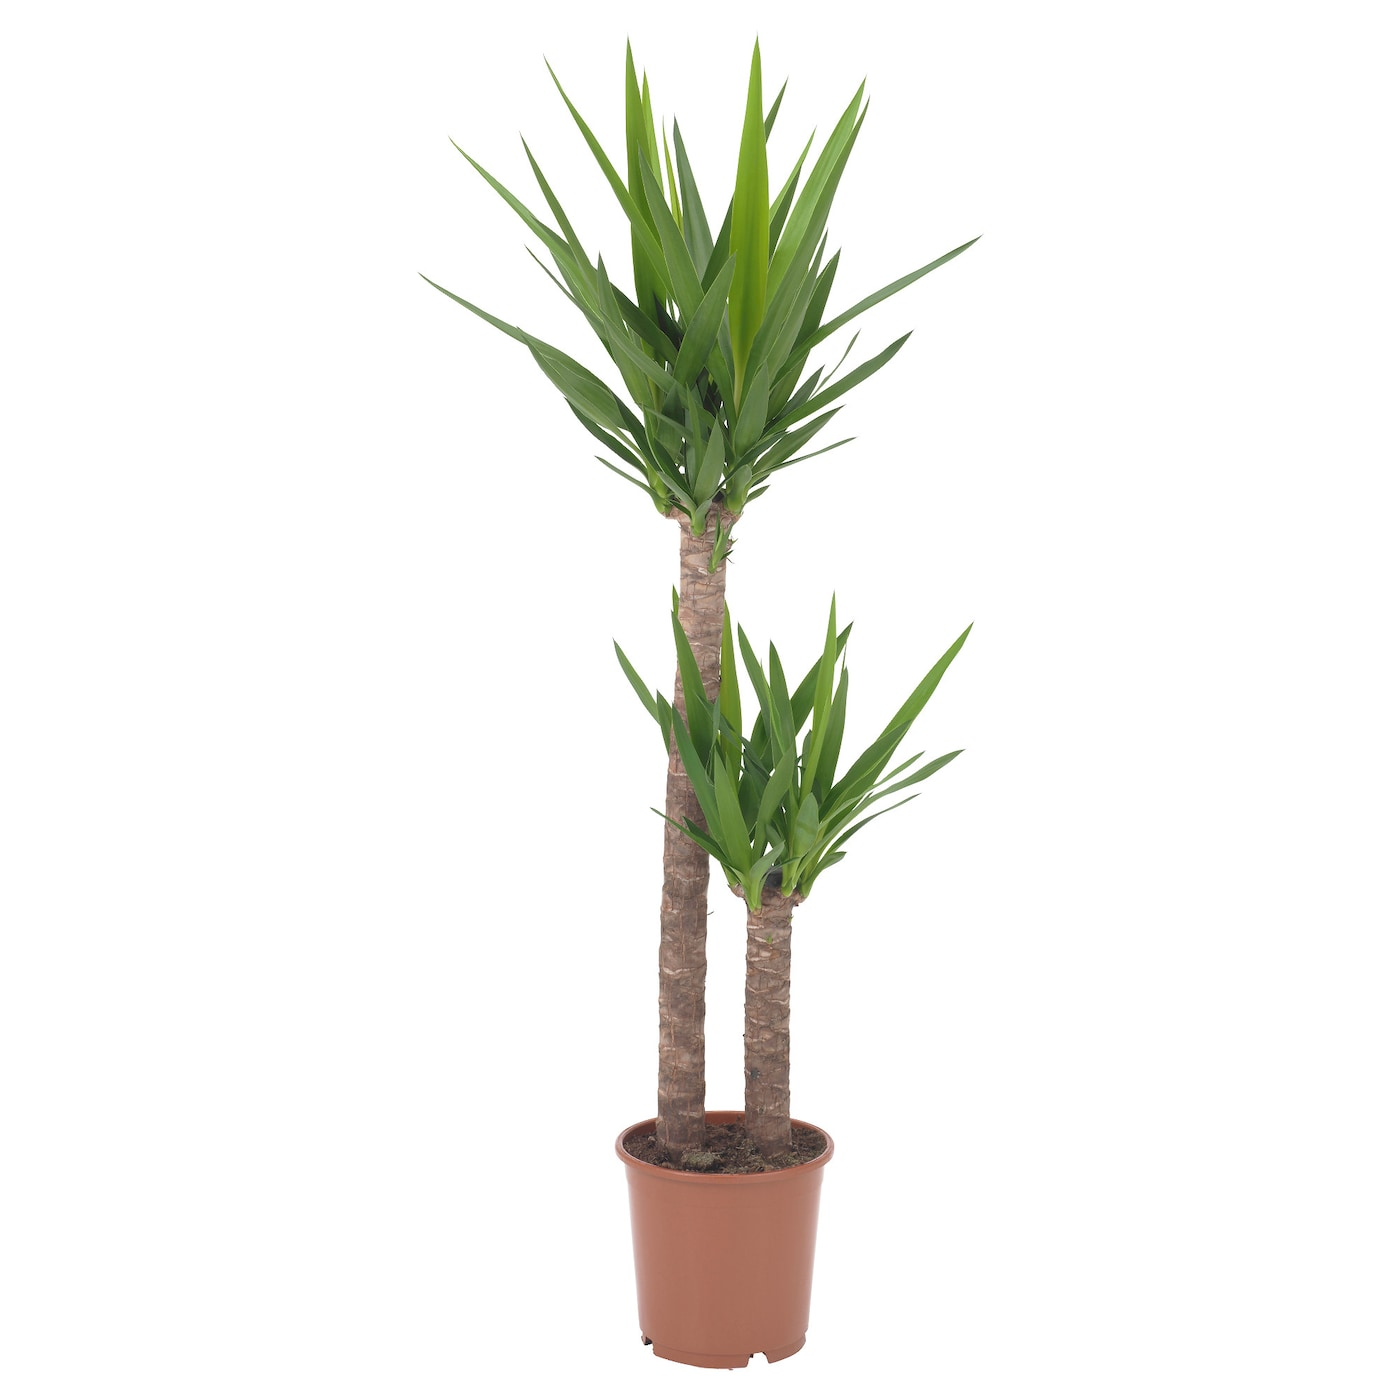 yucca elephantipes potted plant spineless yucca 2 stem 24 cm ikea. Black Bedroom Furniture Sets. Home Design Ideas